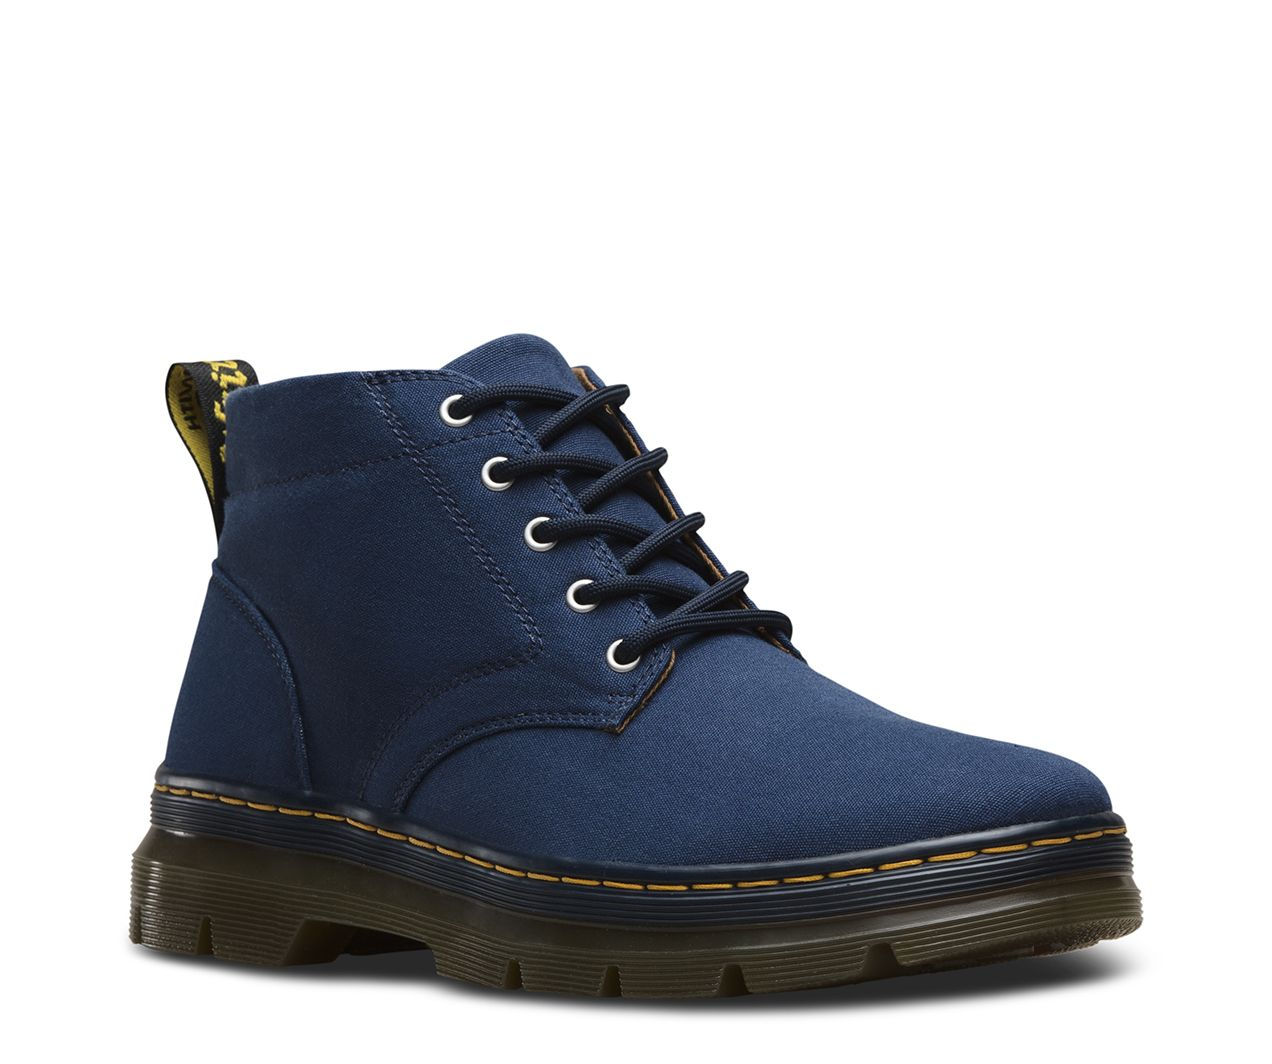 reputable site d38a2 0ee88 Dr Martens Black Python 1460 8-Eye Boots at asos.com